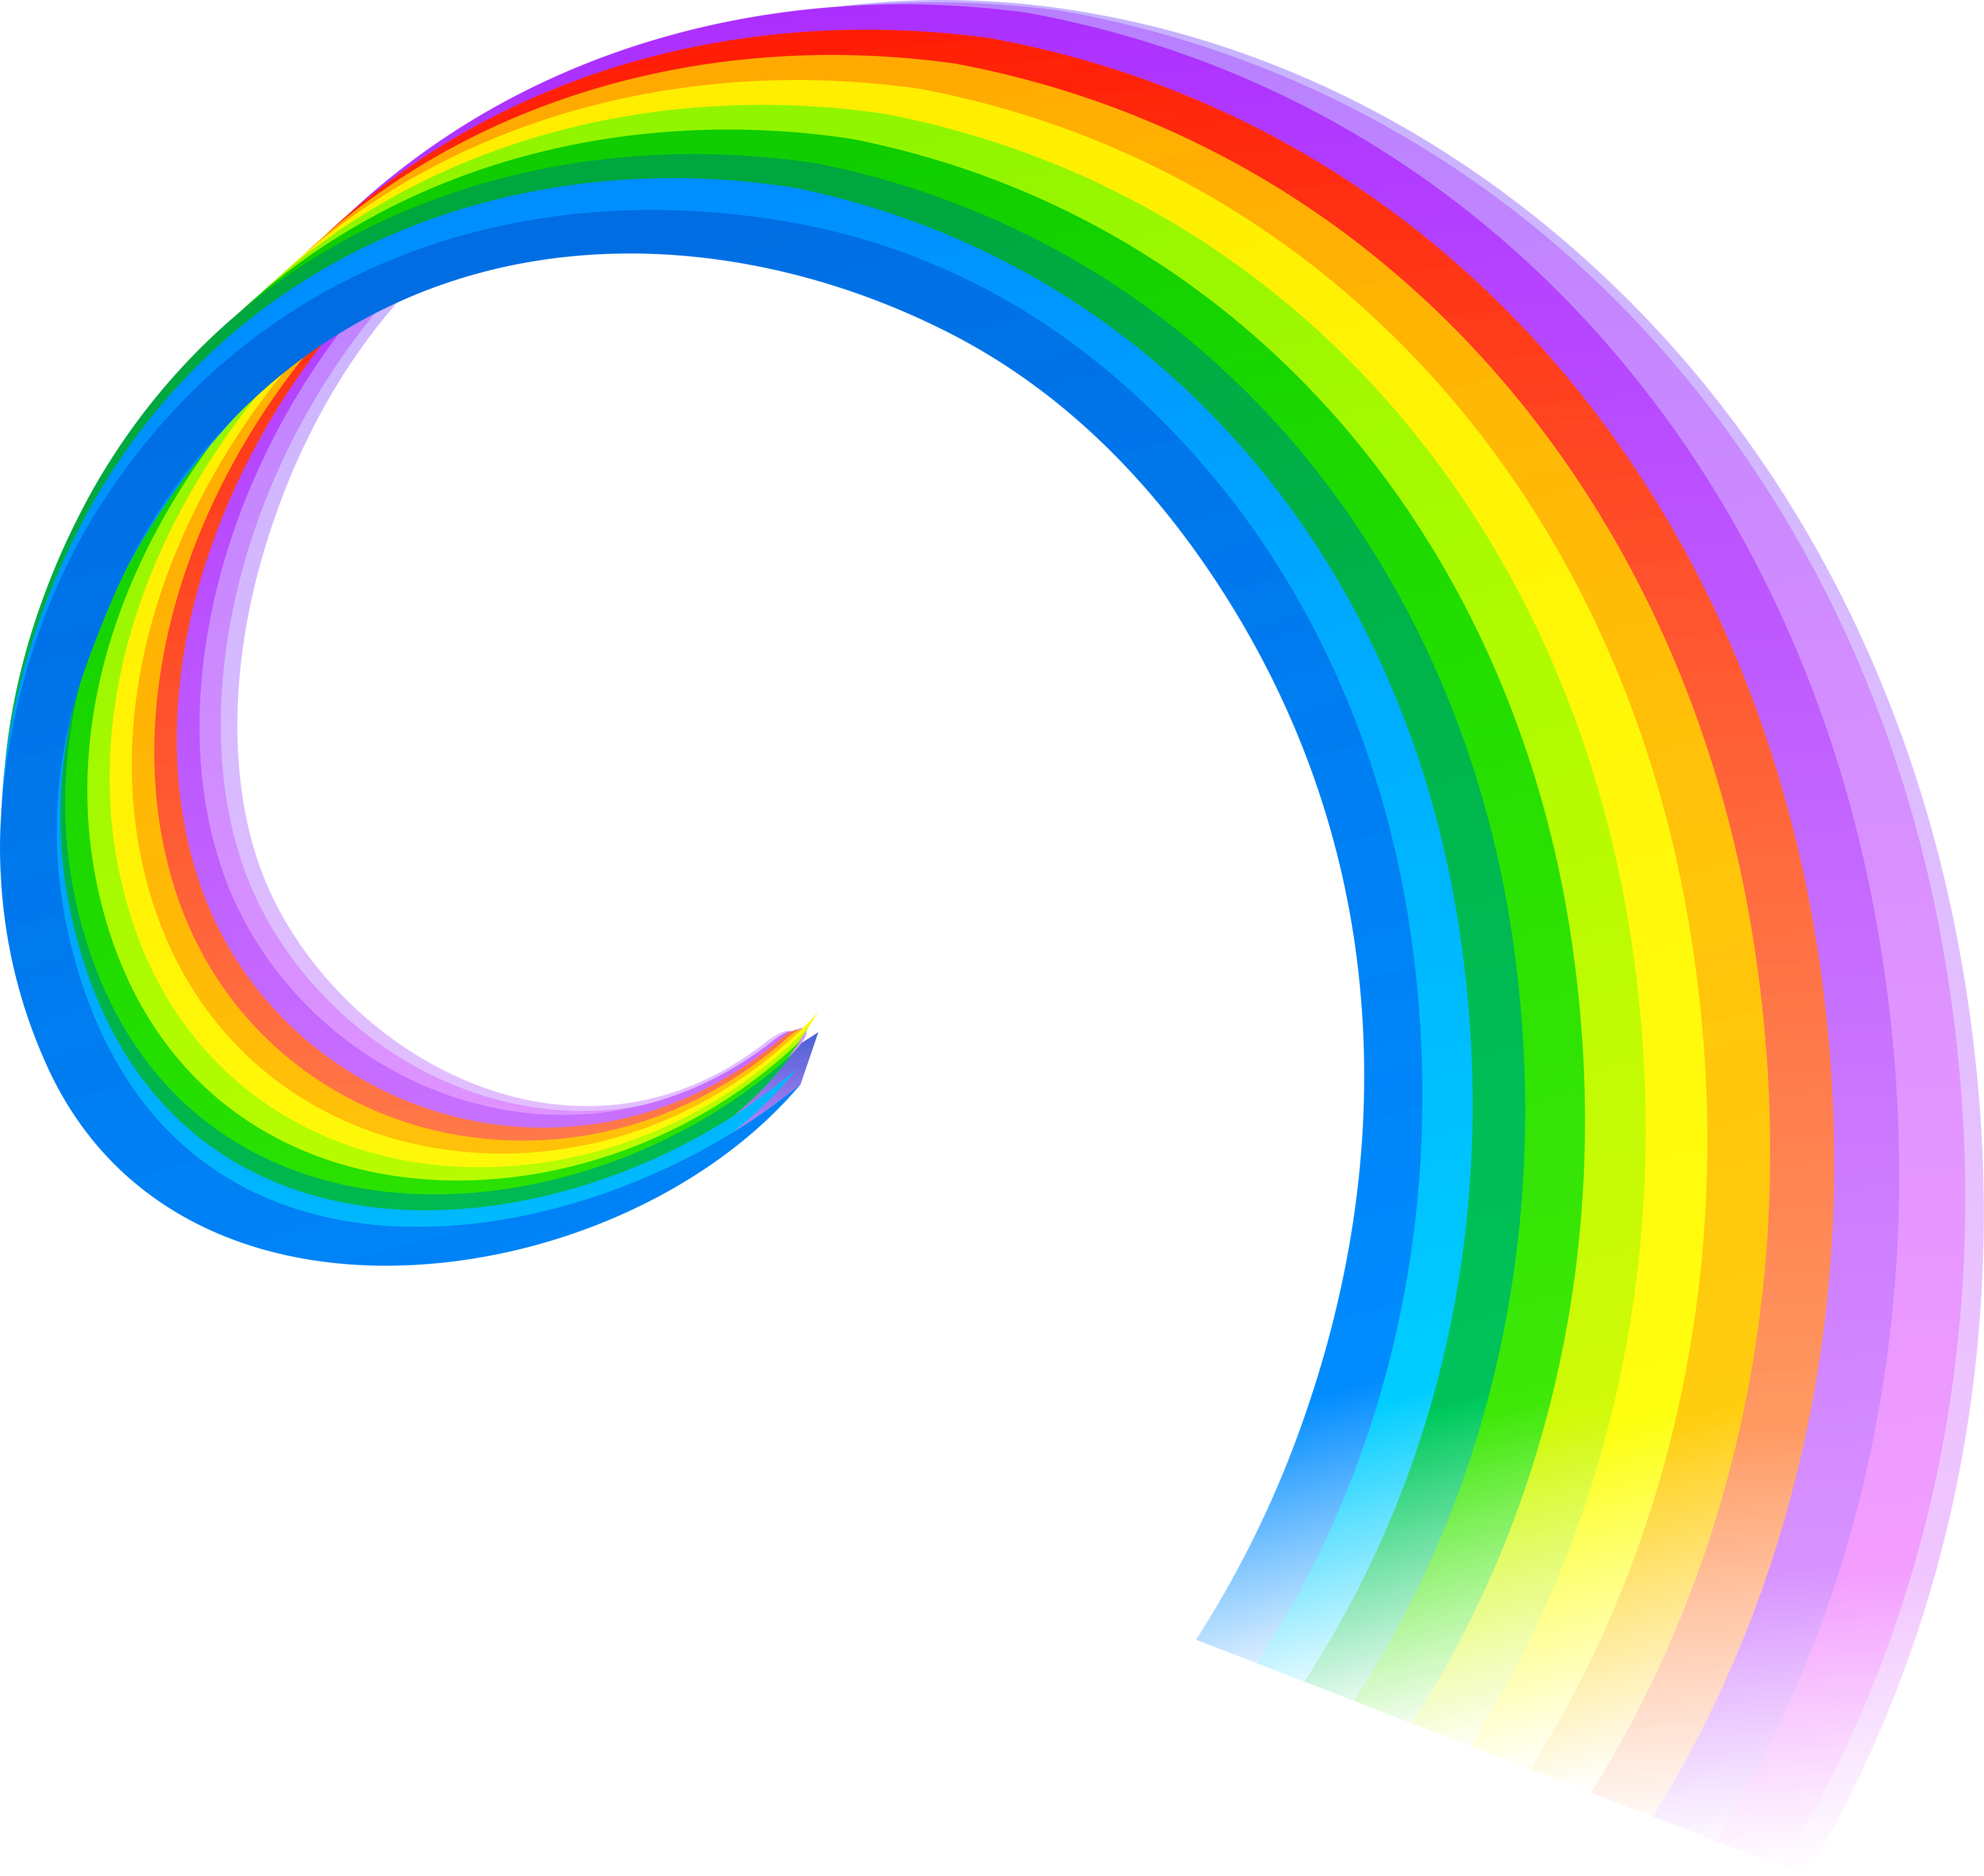 Rainbow png image. Images free download